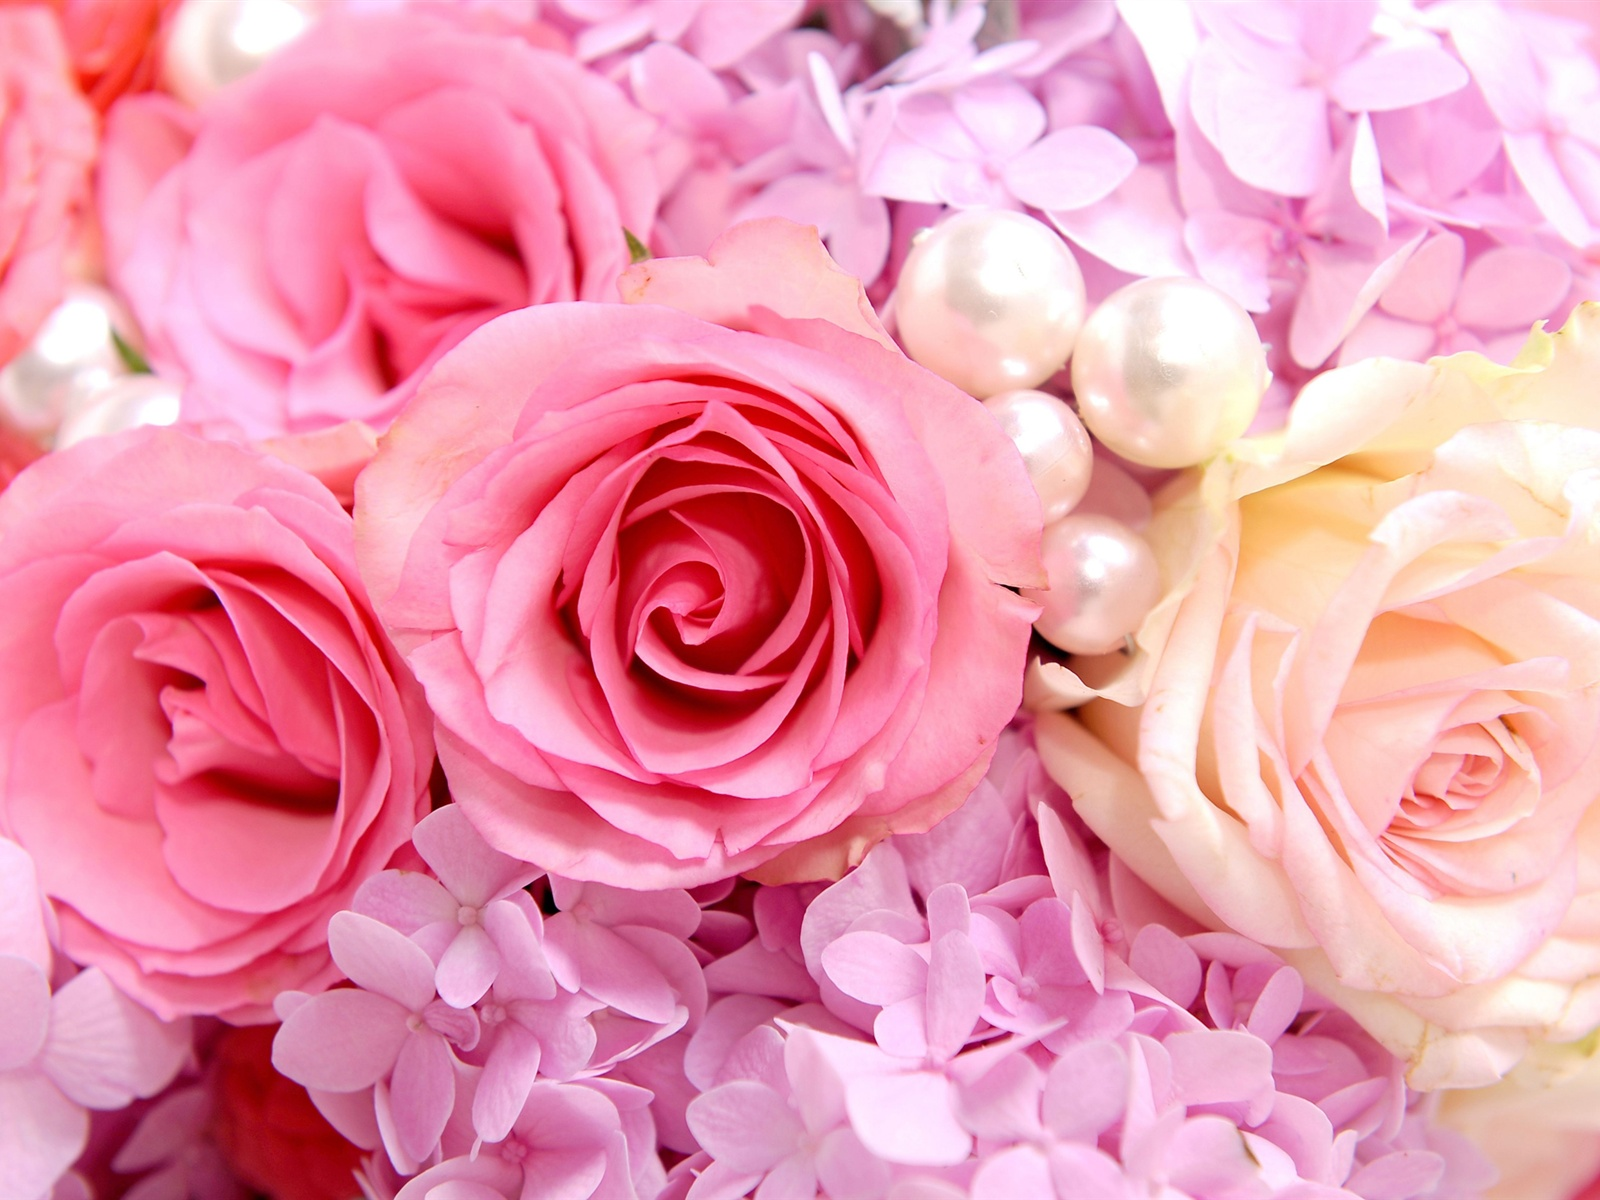 2560x1600 hd - Pink rose hd wallpaper ...